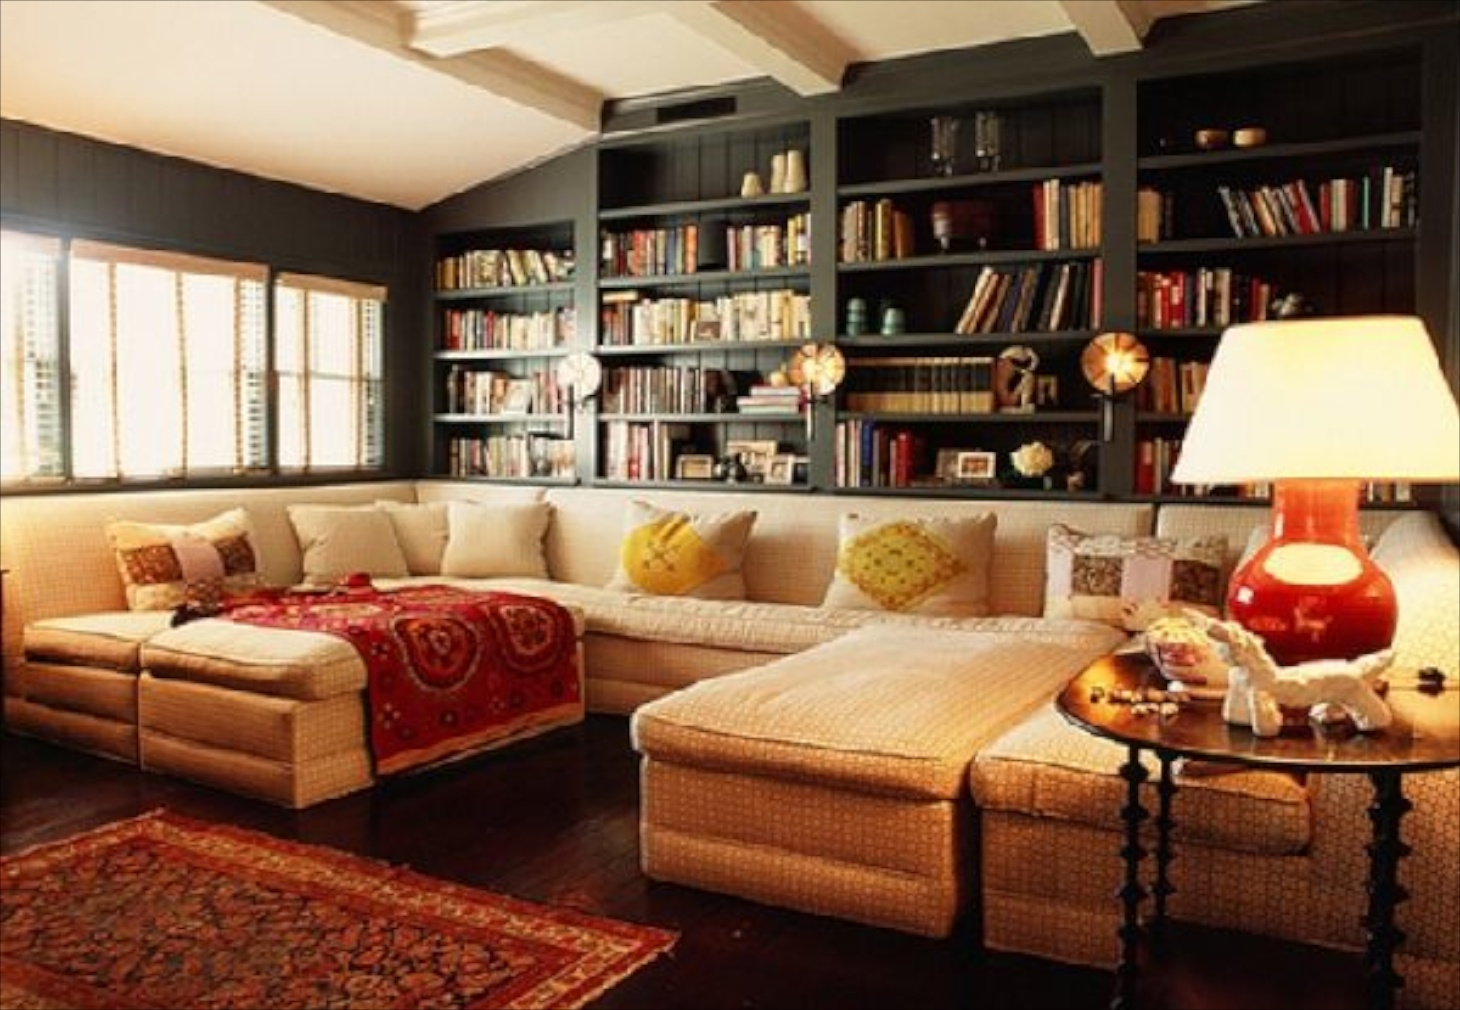 23 sofas and bookcase ideas in cozy living room design for Living room ideas cosy